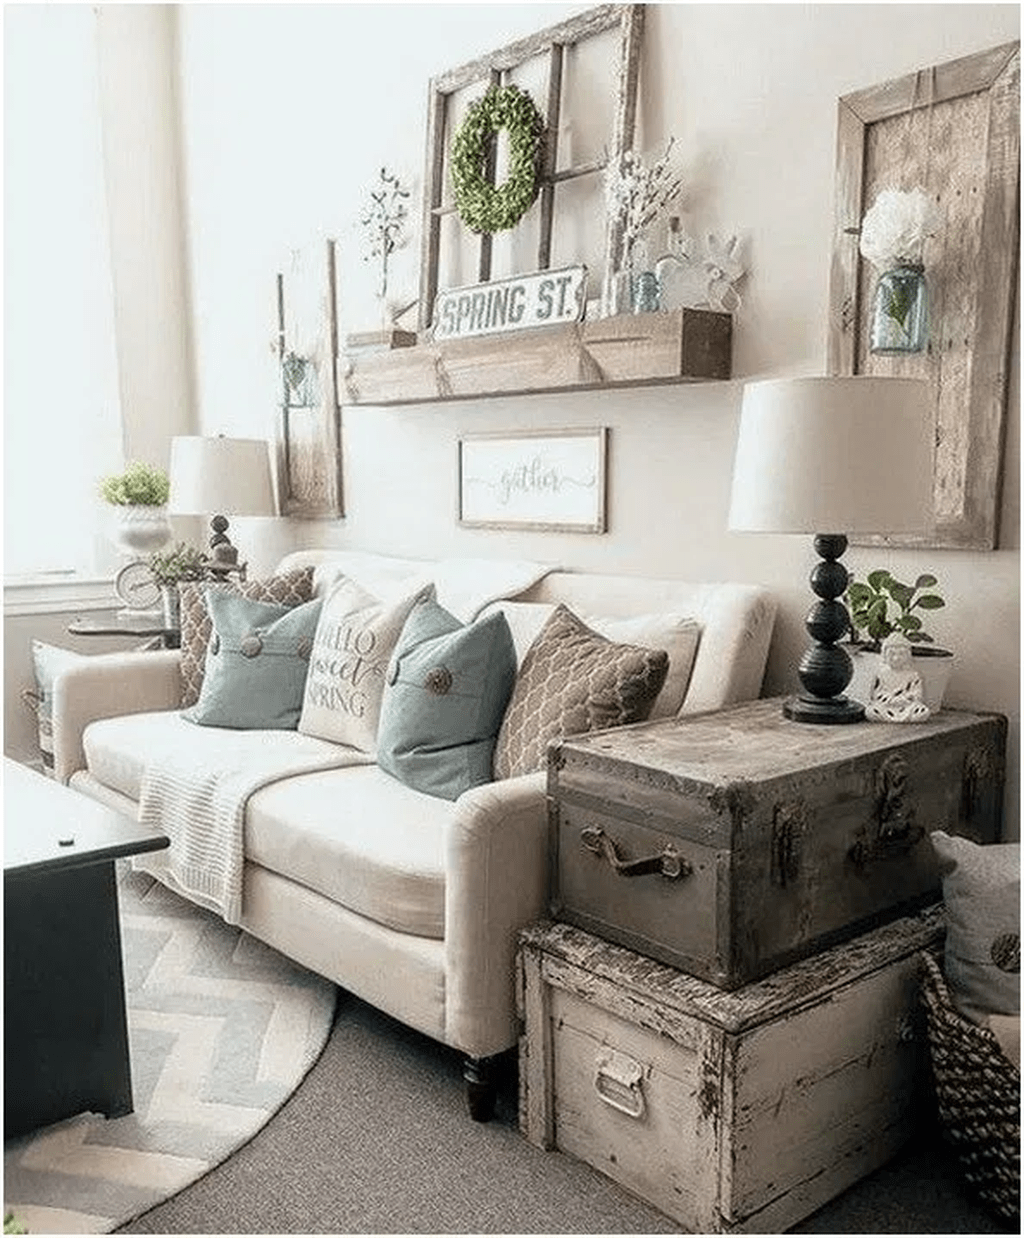 Make your space comfortable and stylish with these chic living room decorating ideas and pictures. Pin By Kelli Taylor On Home Decor In 2021 Farmhouse Decor Living Room Cozy Farmhouse Living Room Farm House Living Room